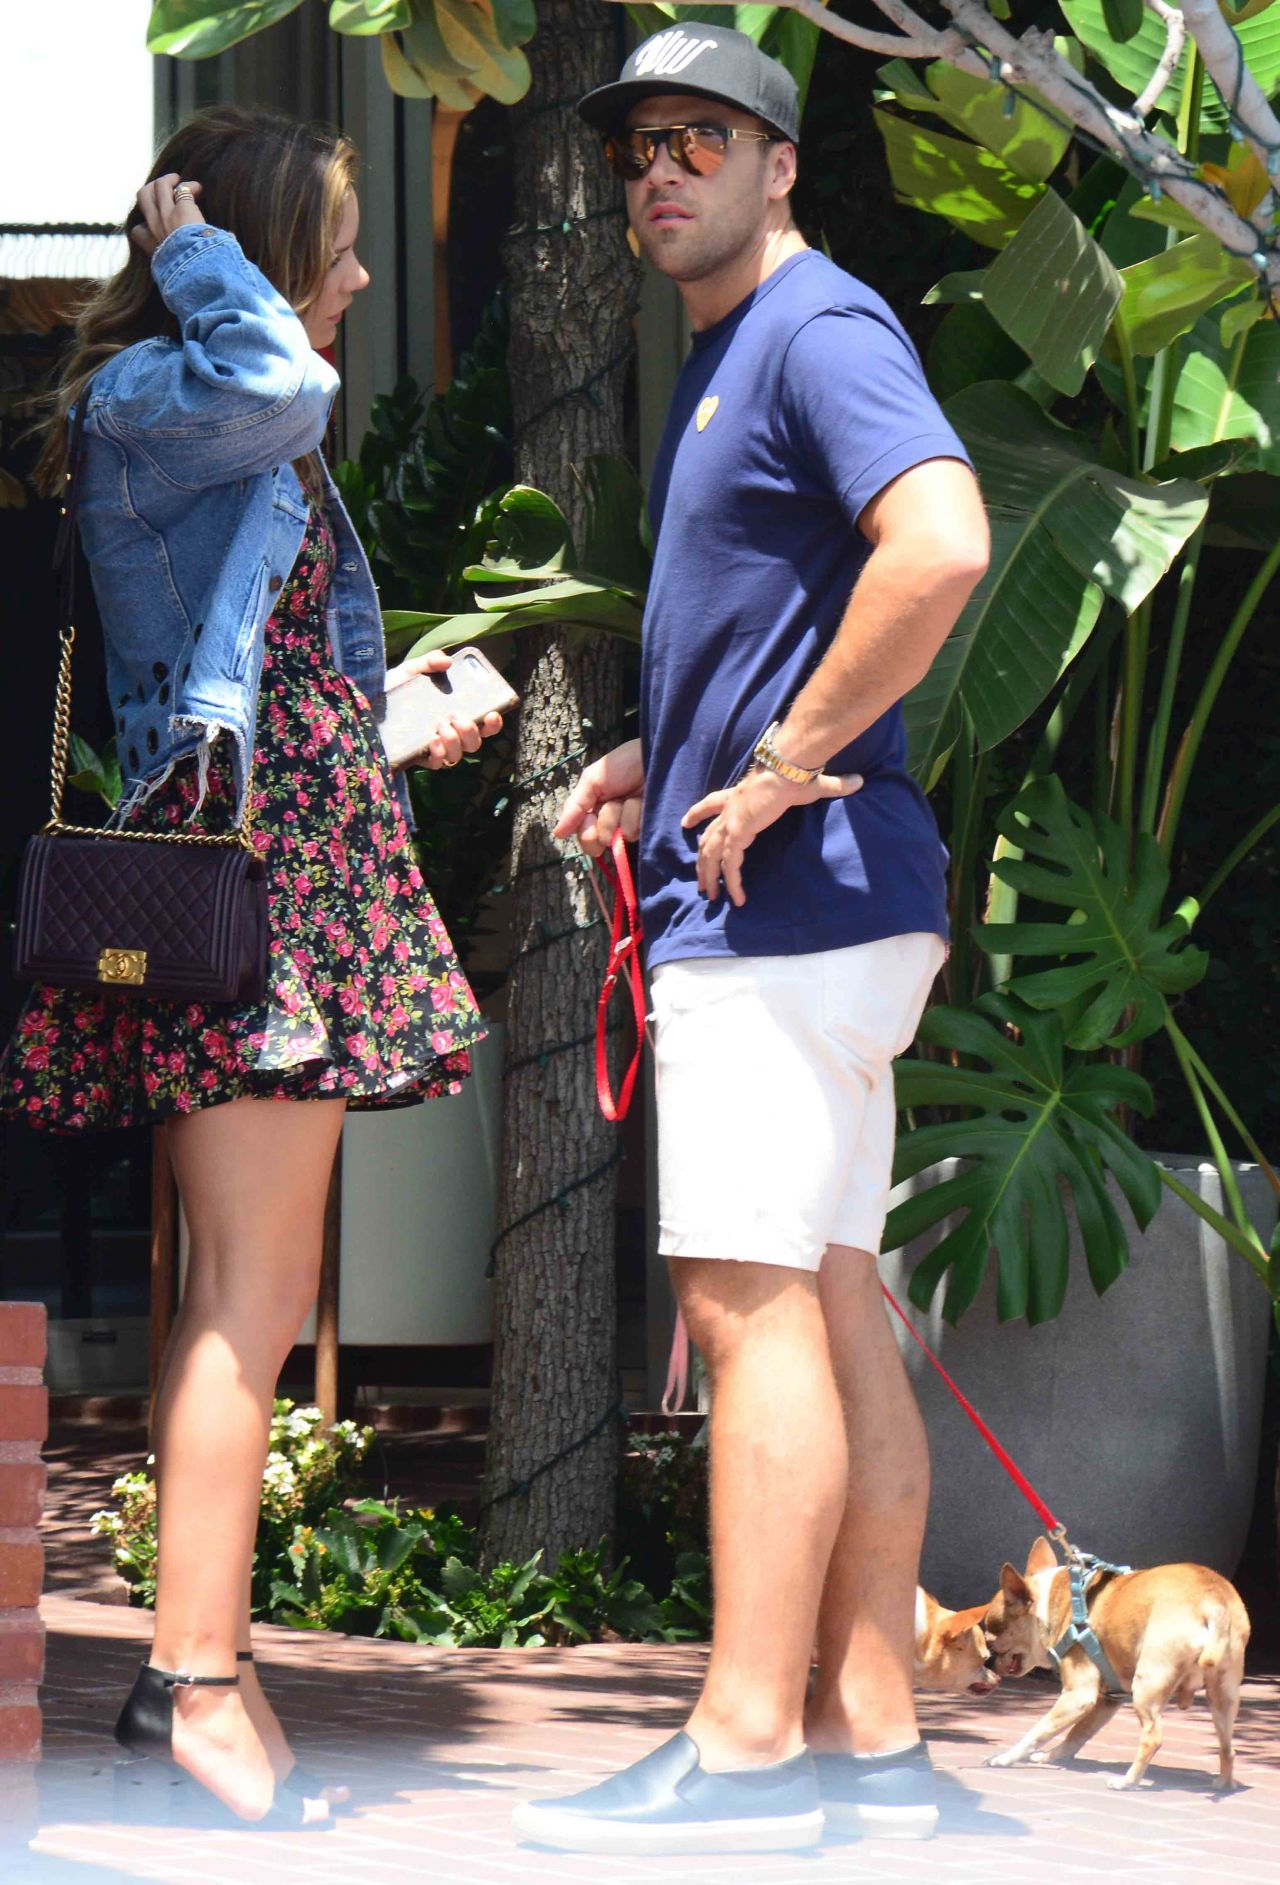 Katharine mcphee leggy in mini skirt outside fred segal in west hollywood naked (26 photo), Bikini Celebrity image